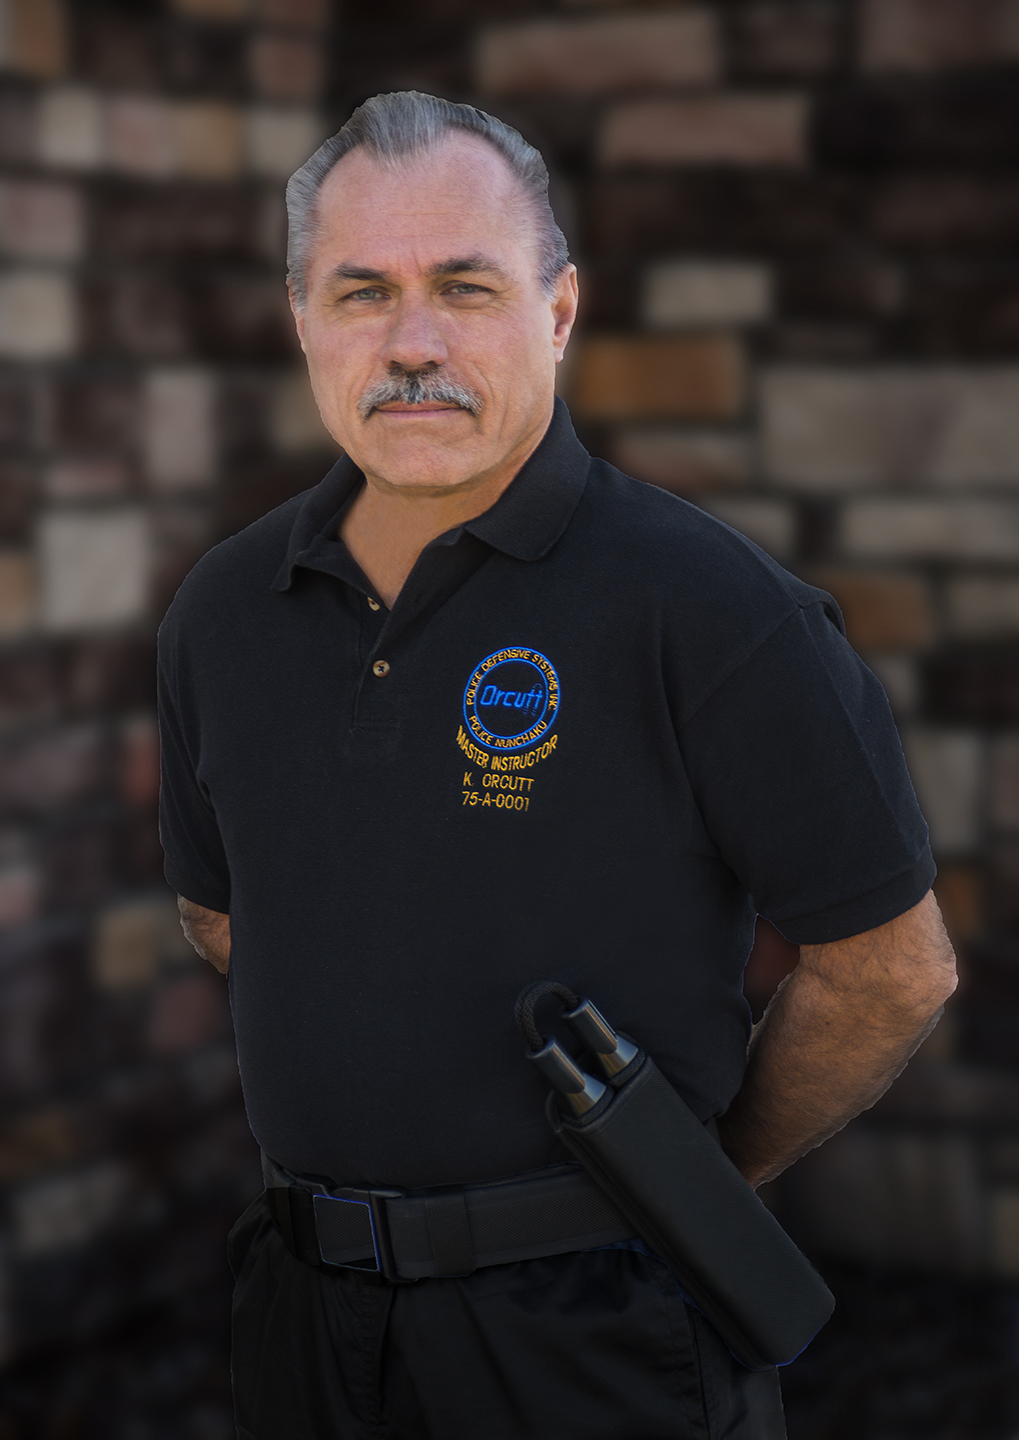 Sergeant Kevin Orcutt (Ret.), Master Instructor